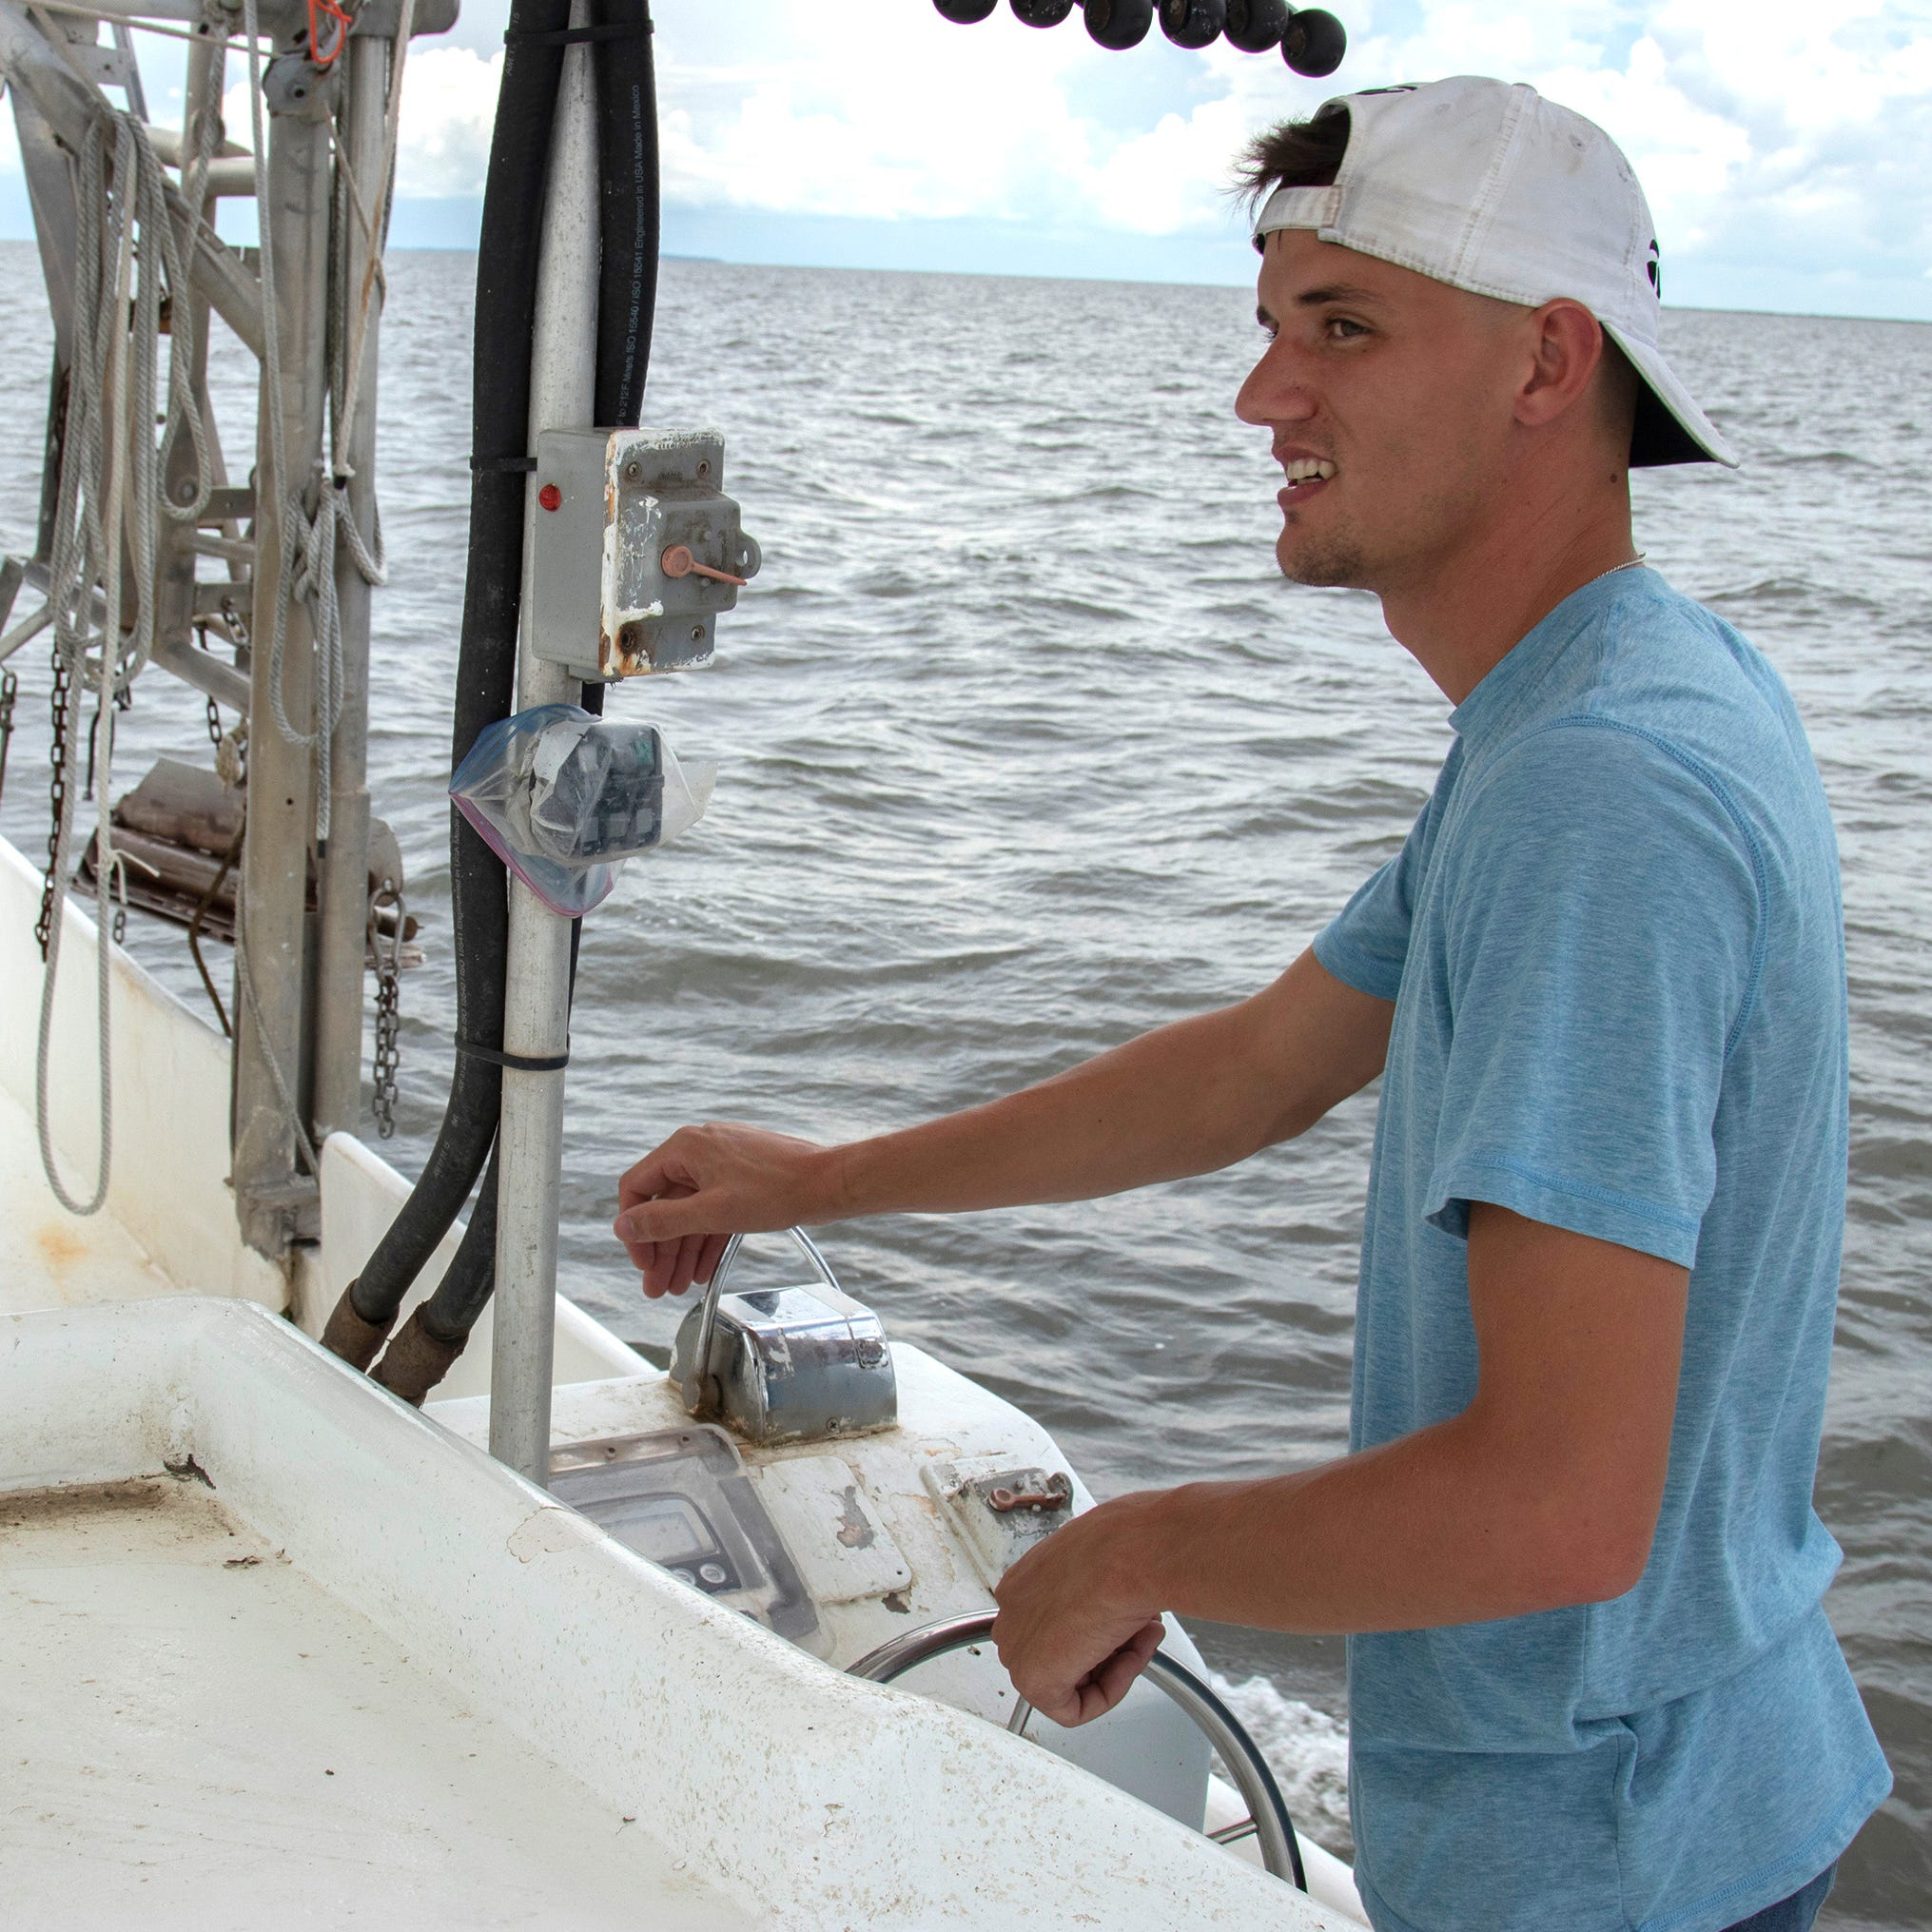 Treading water: Dead zone worsens troubles for Louisiana shrimpers